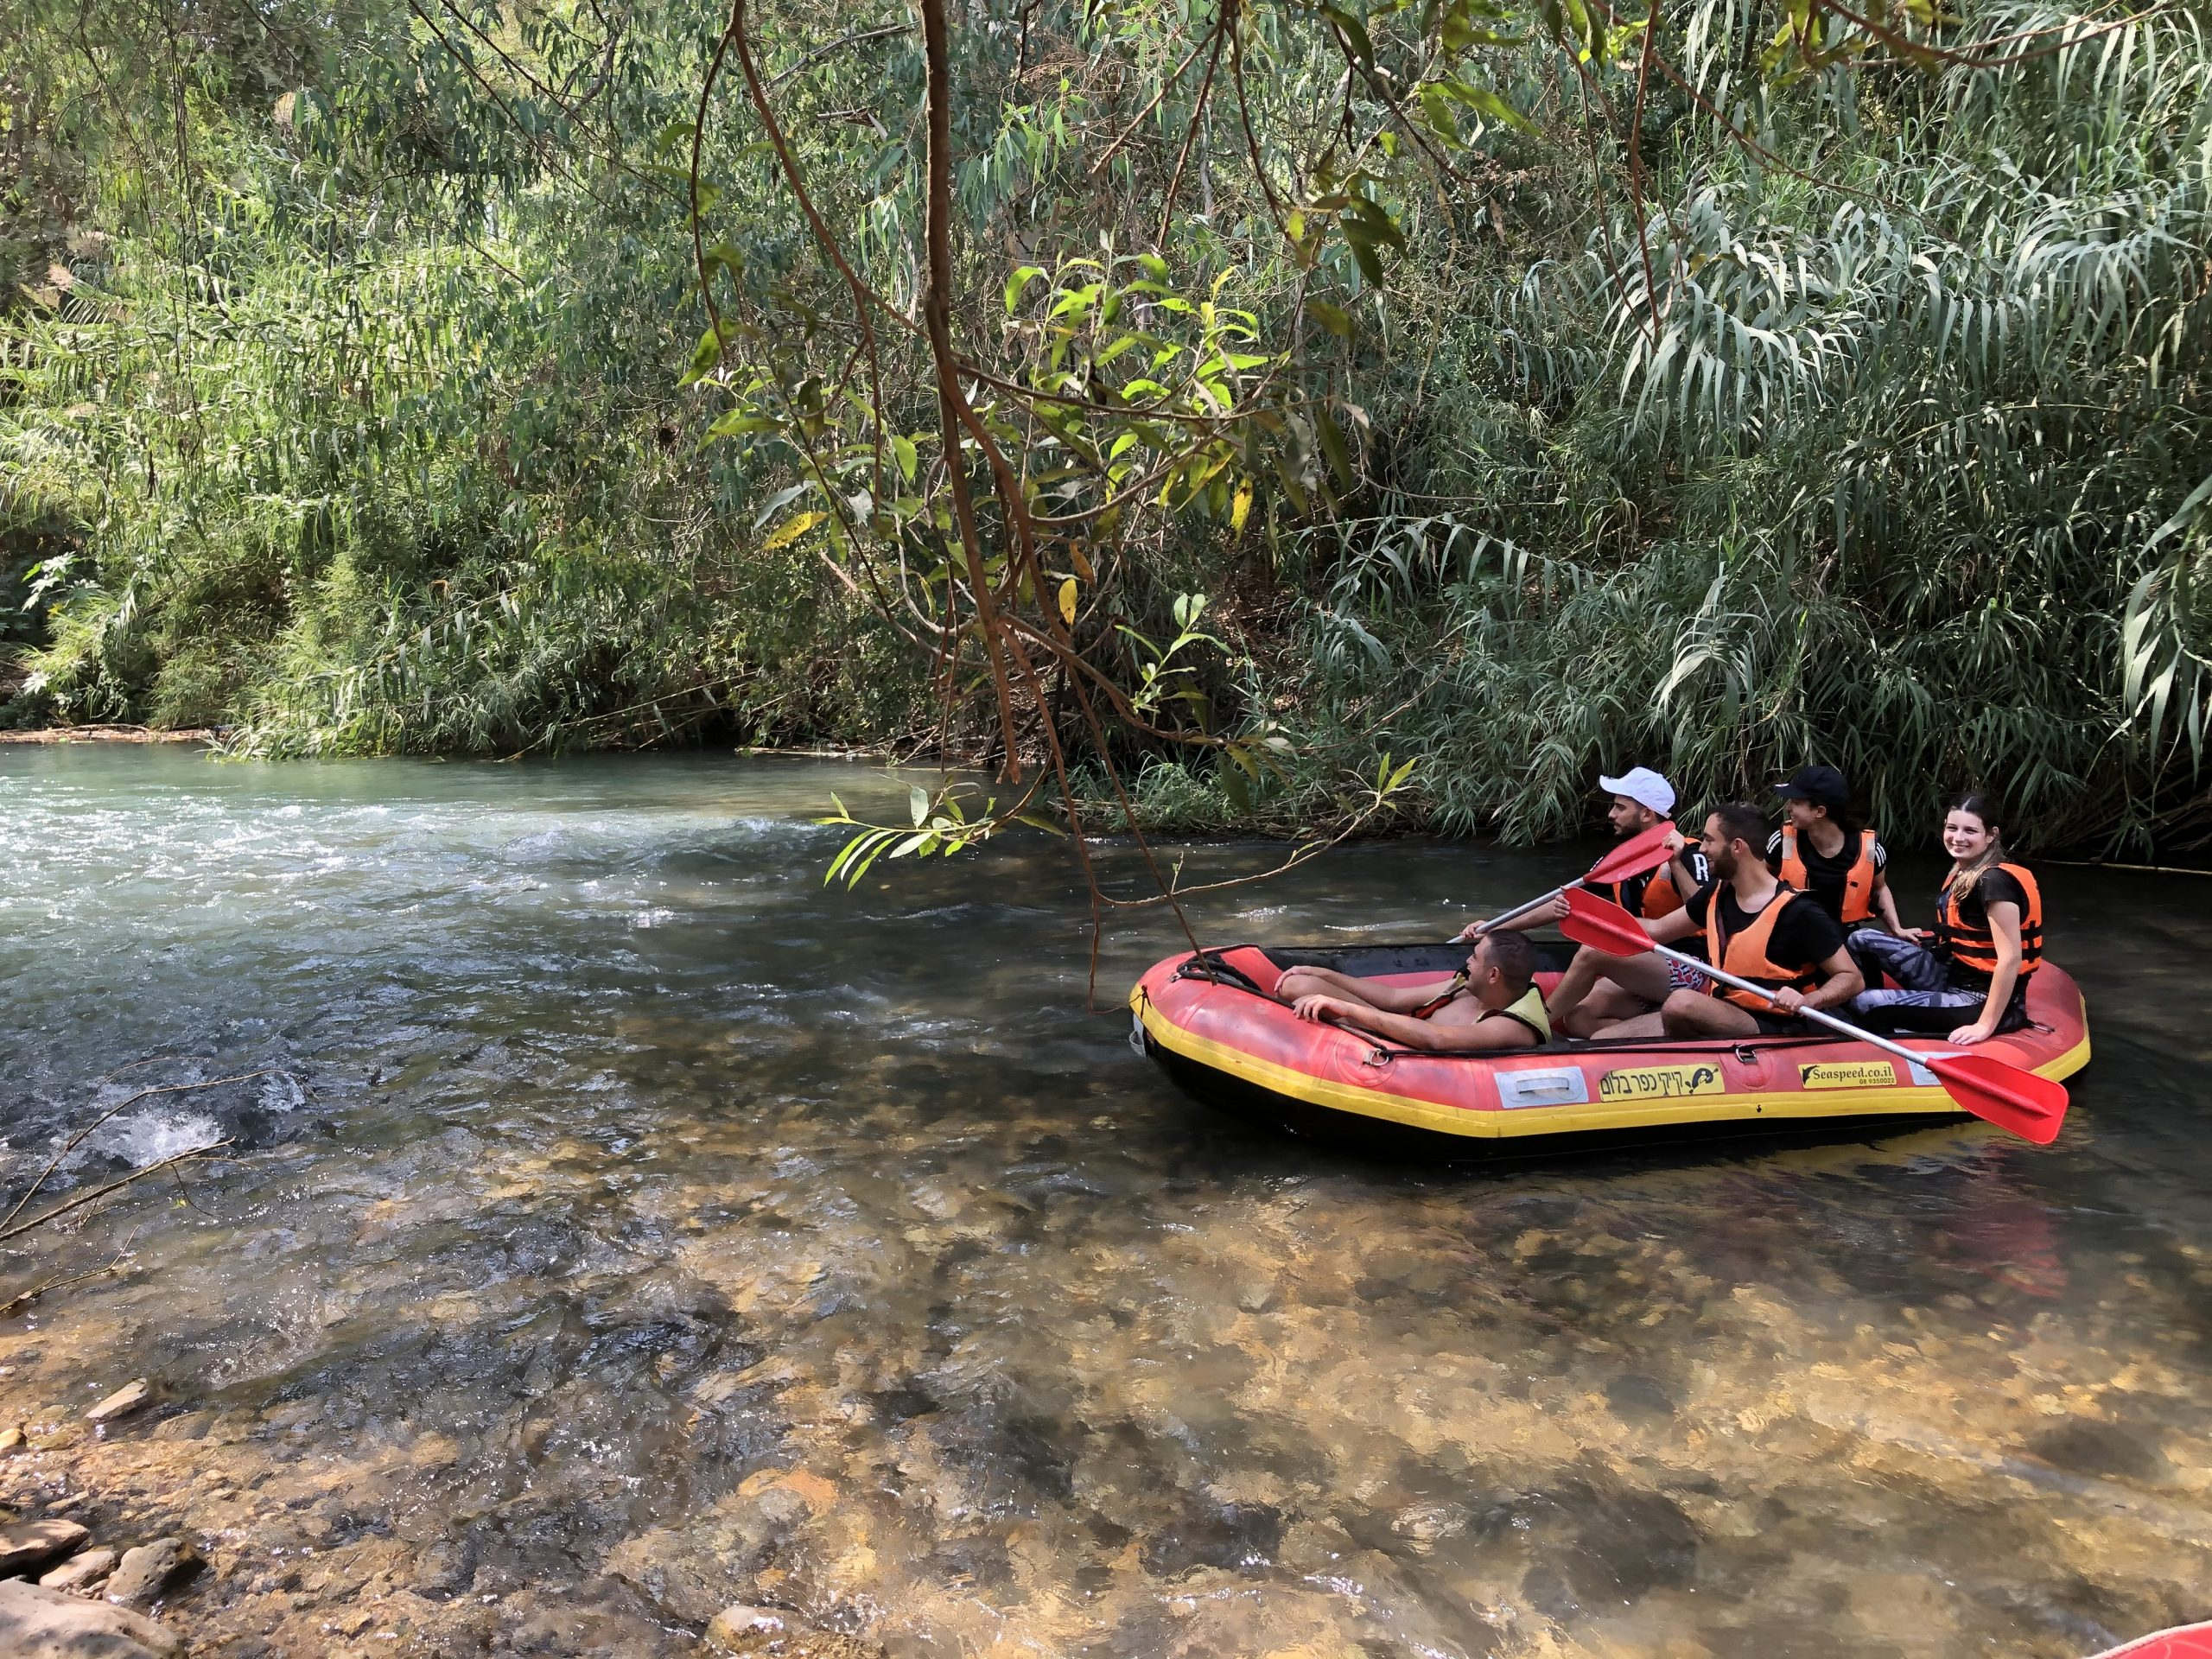 Kayaking in Upper Galilee, Israel